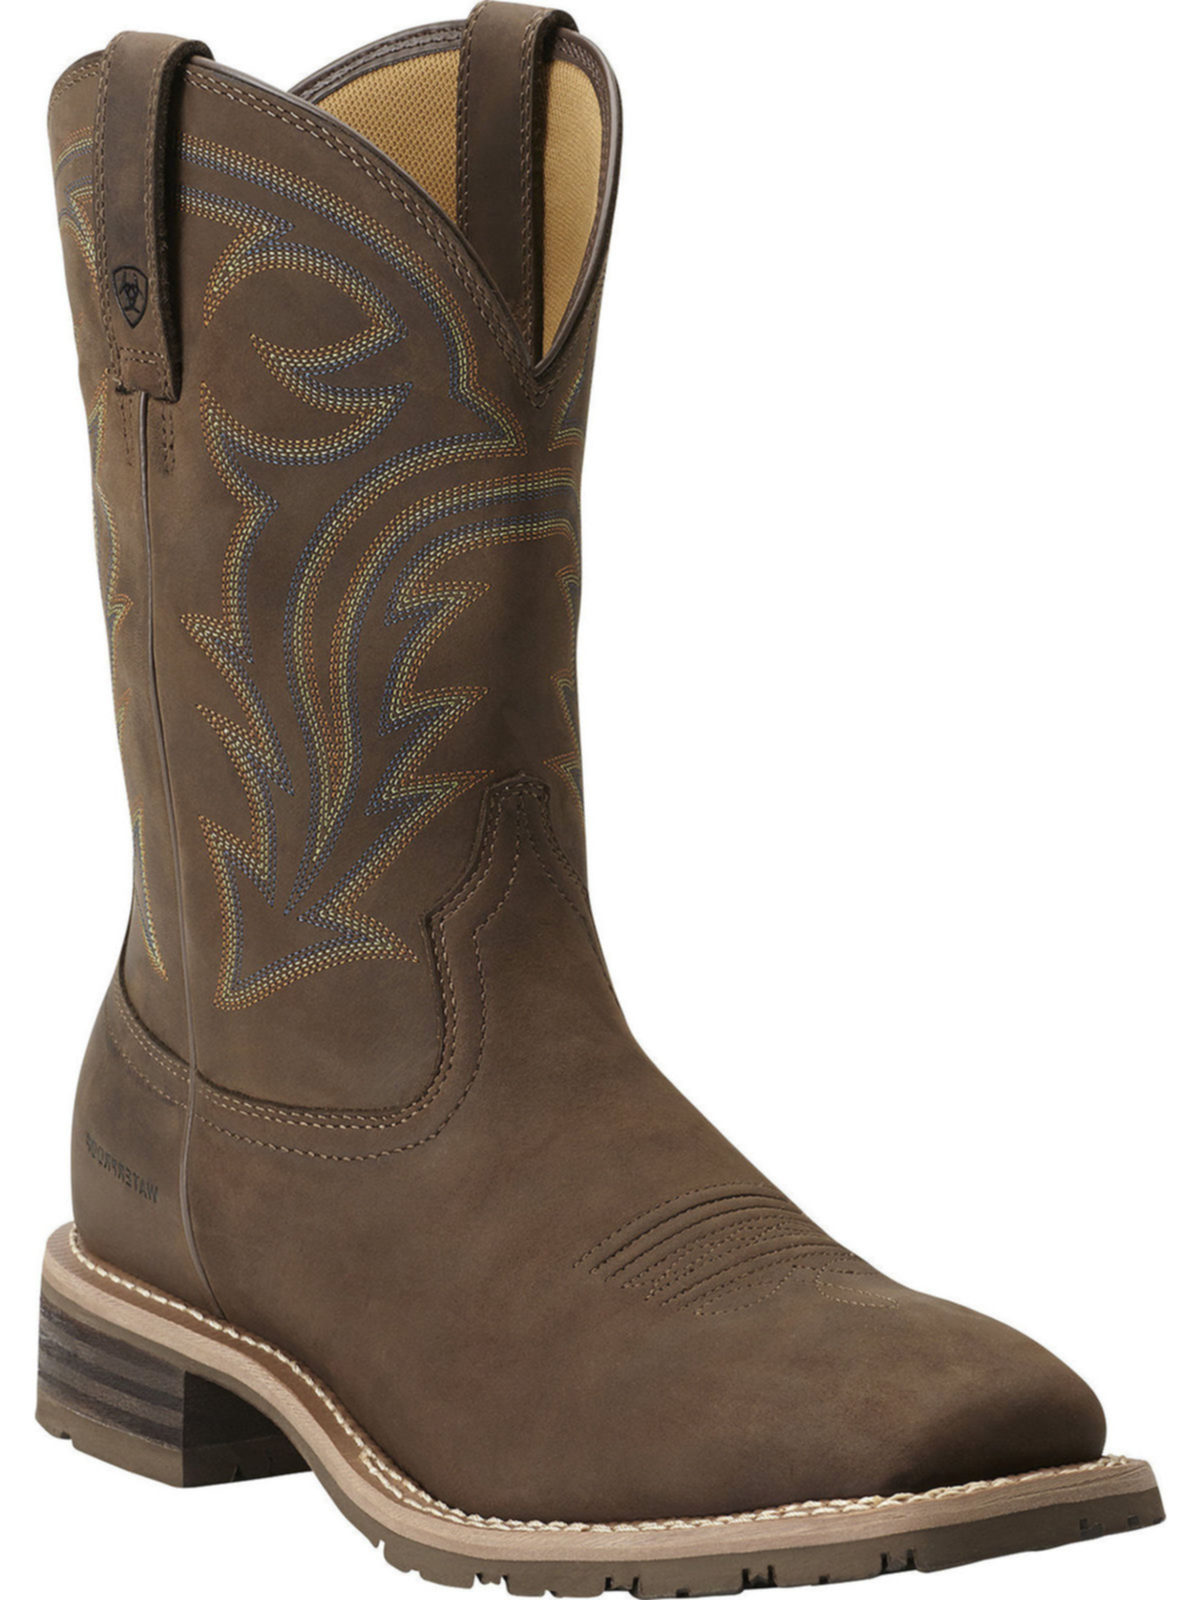 2920af86d4f Ariat Mens Performance Hybrid Rancher H2O Oily Distressed Brown Cowboy Boot  10014067